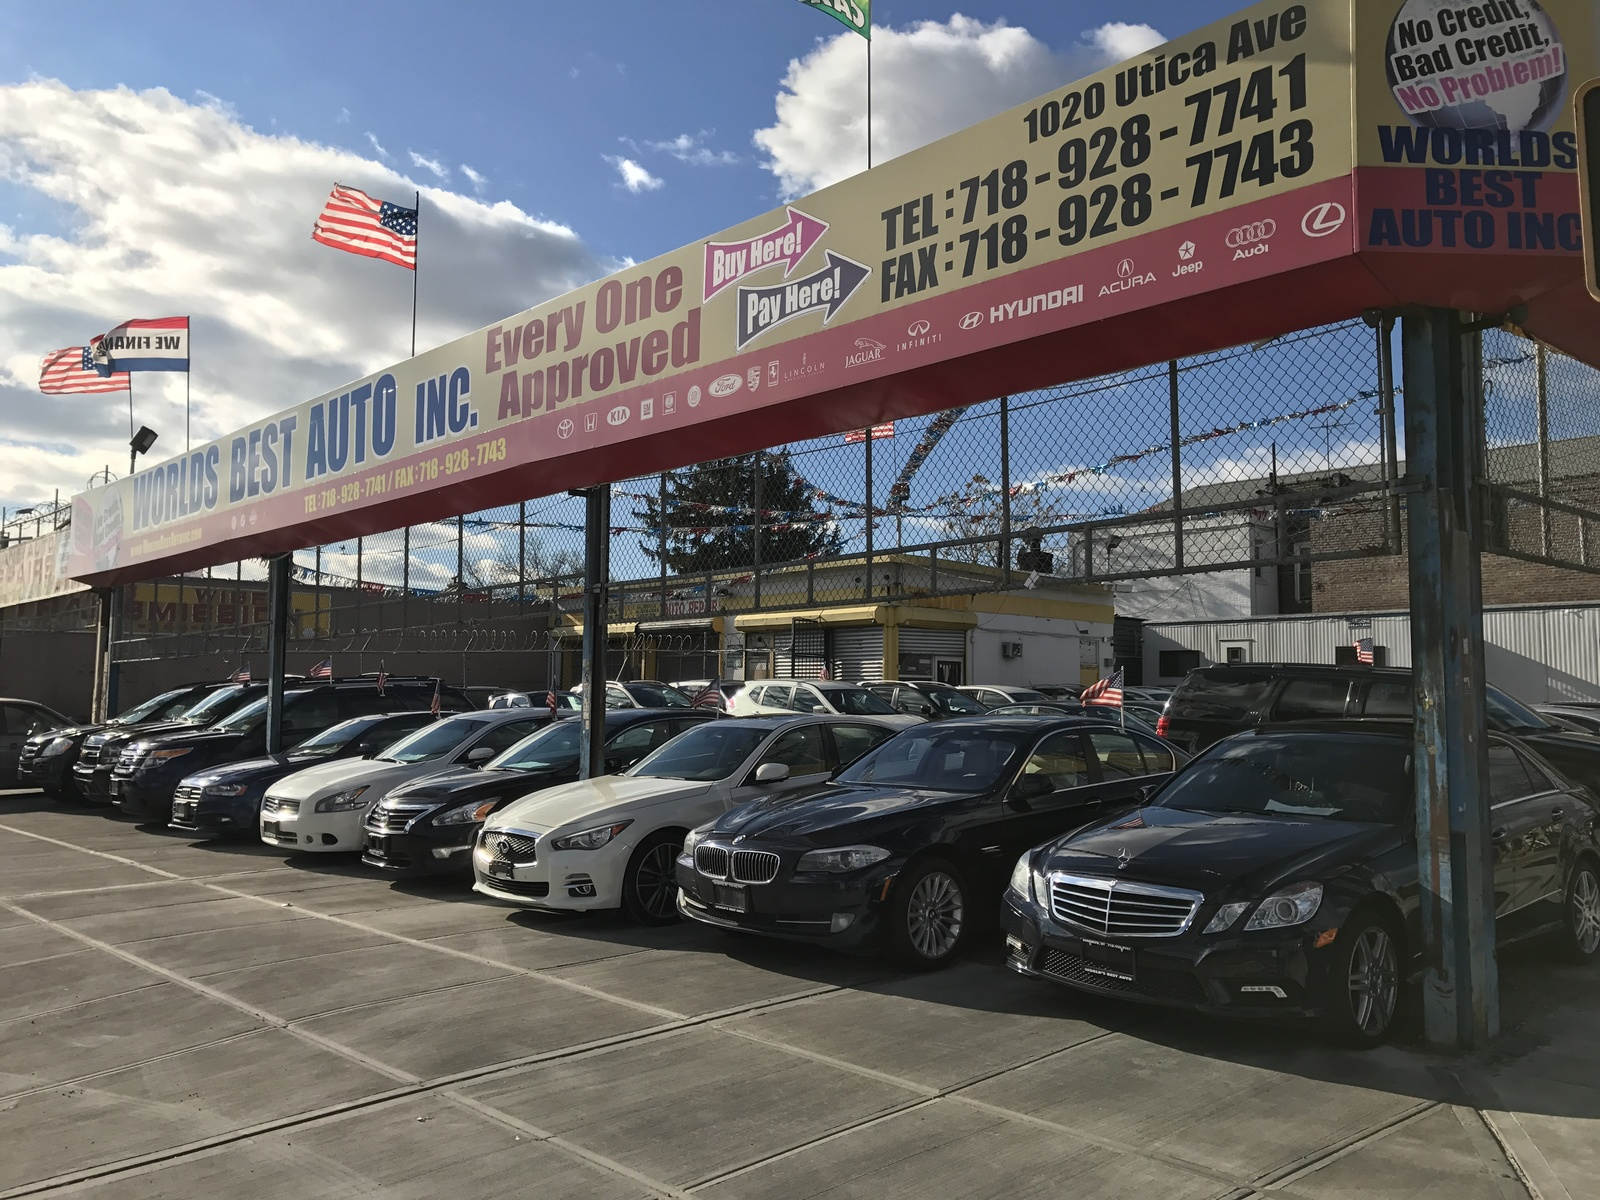 world s best auto inc brooklyn ny read consumer reviews browse used and new cars for sale